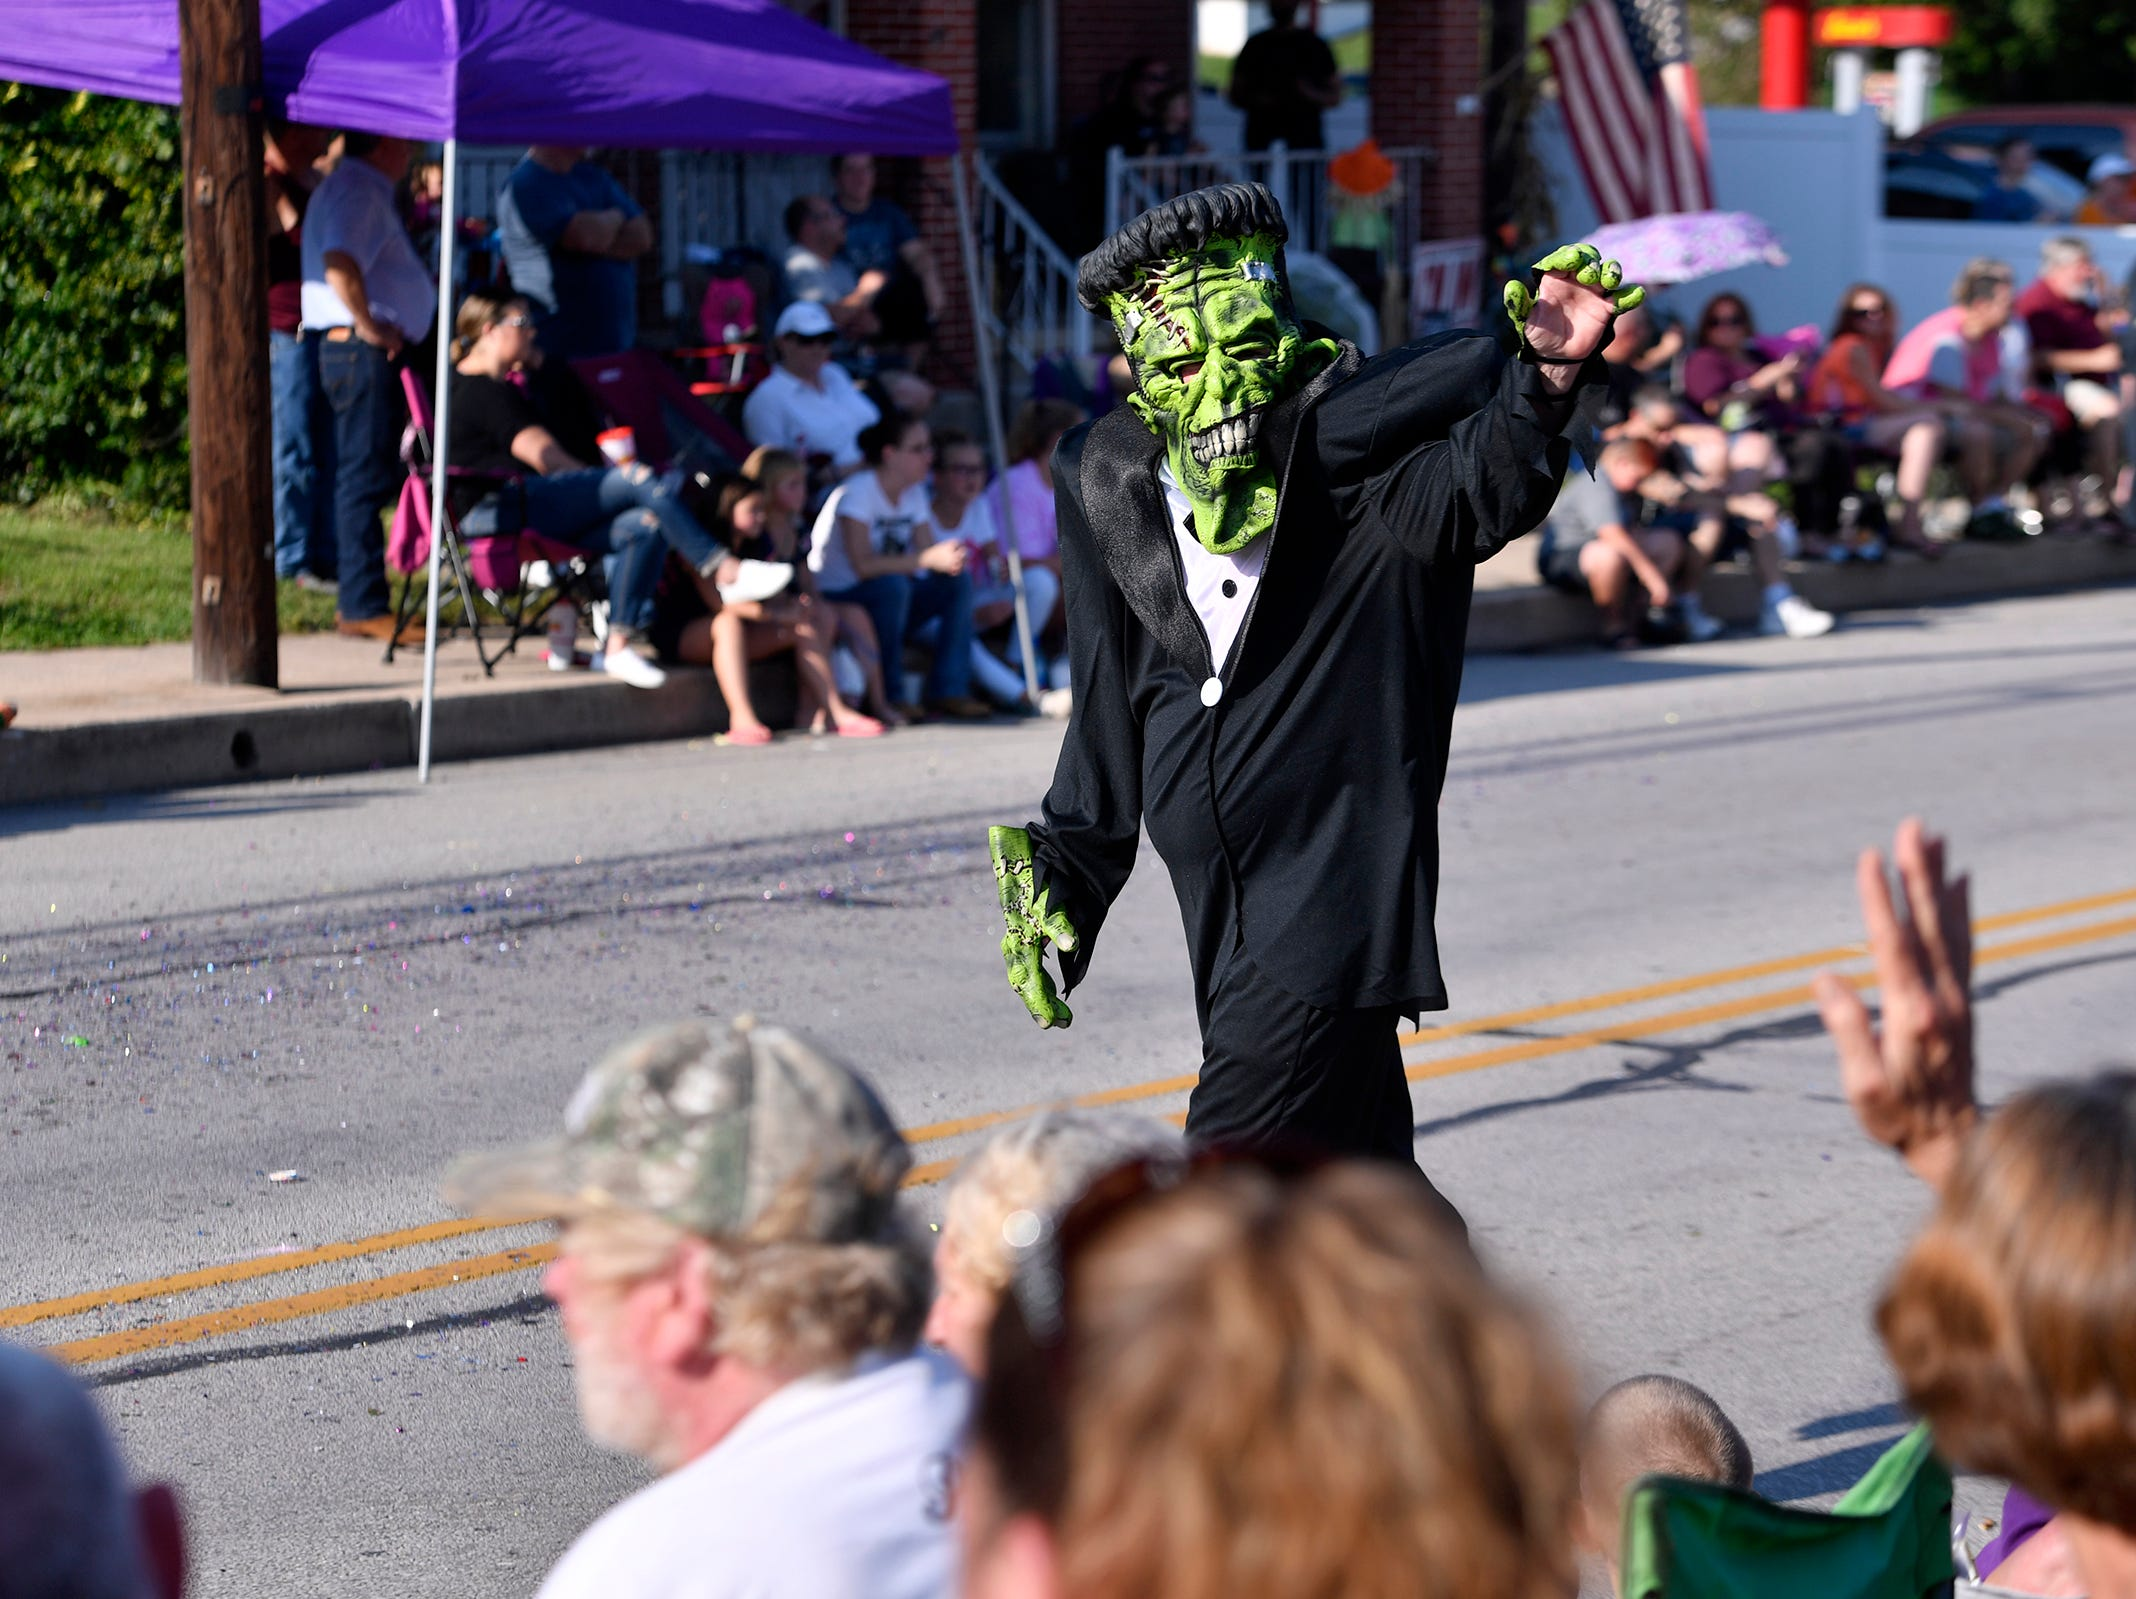 Big crowd in Dover for first Halloween Parade in the area, Sunday Oct. 7, 2018. John A. Pavoncello photo